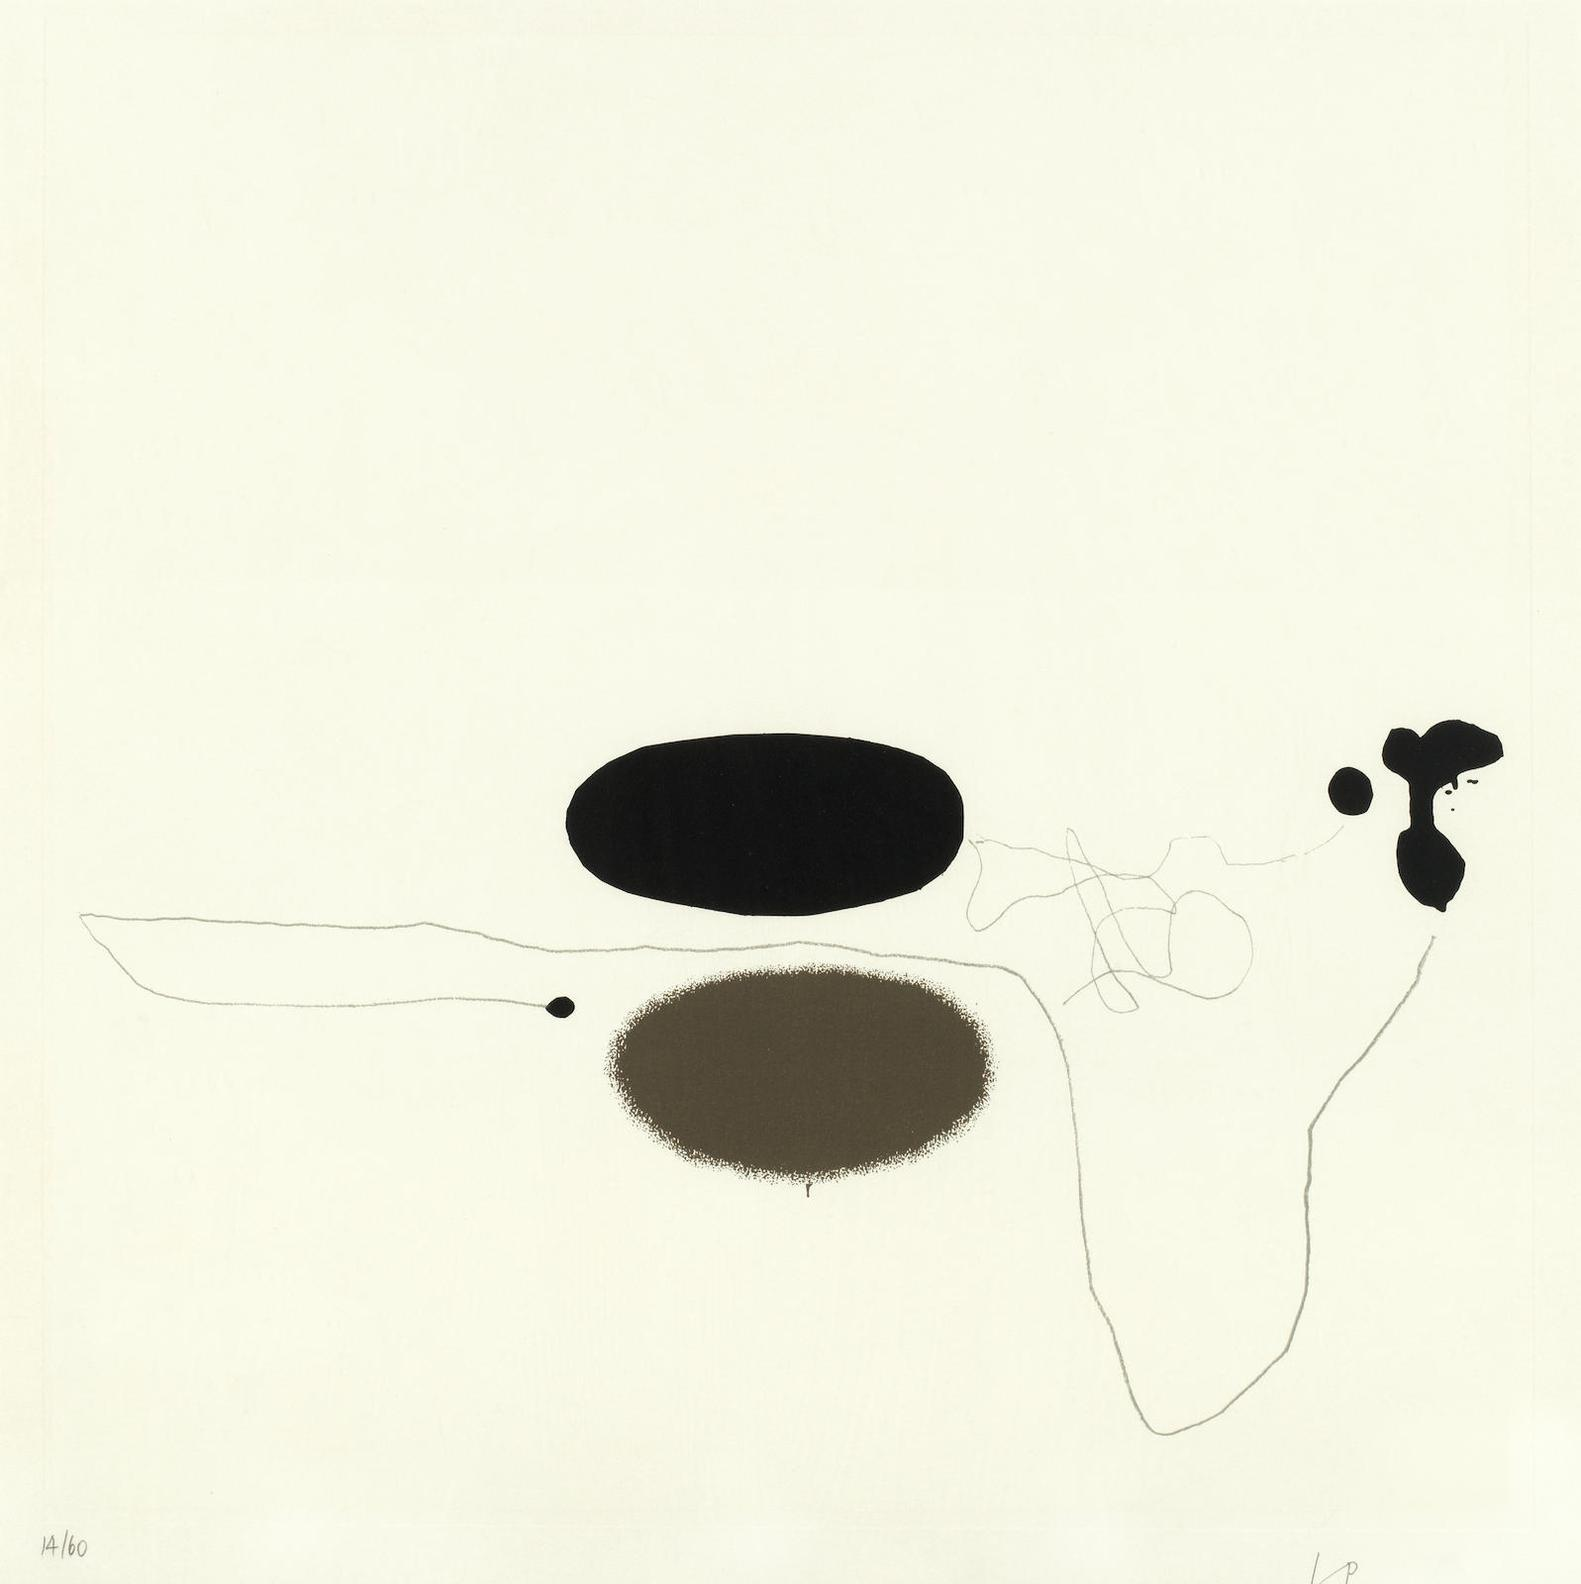 Victor Pasmore-Linear Development 4, From Points Of Contact - Linear Developments-1971